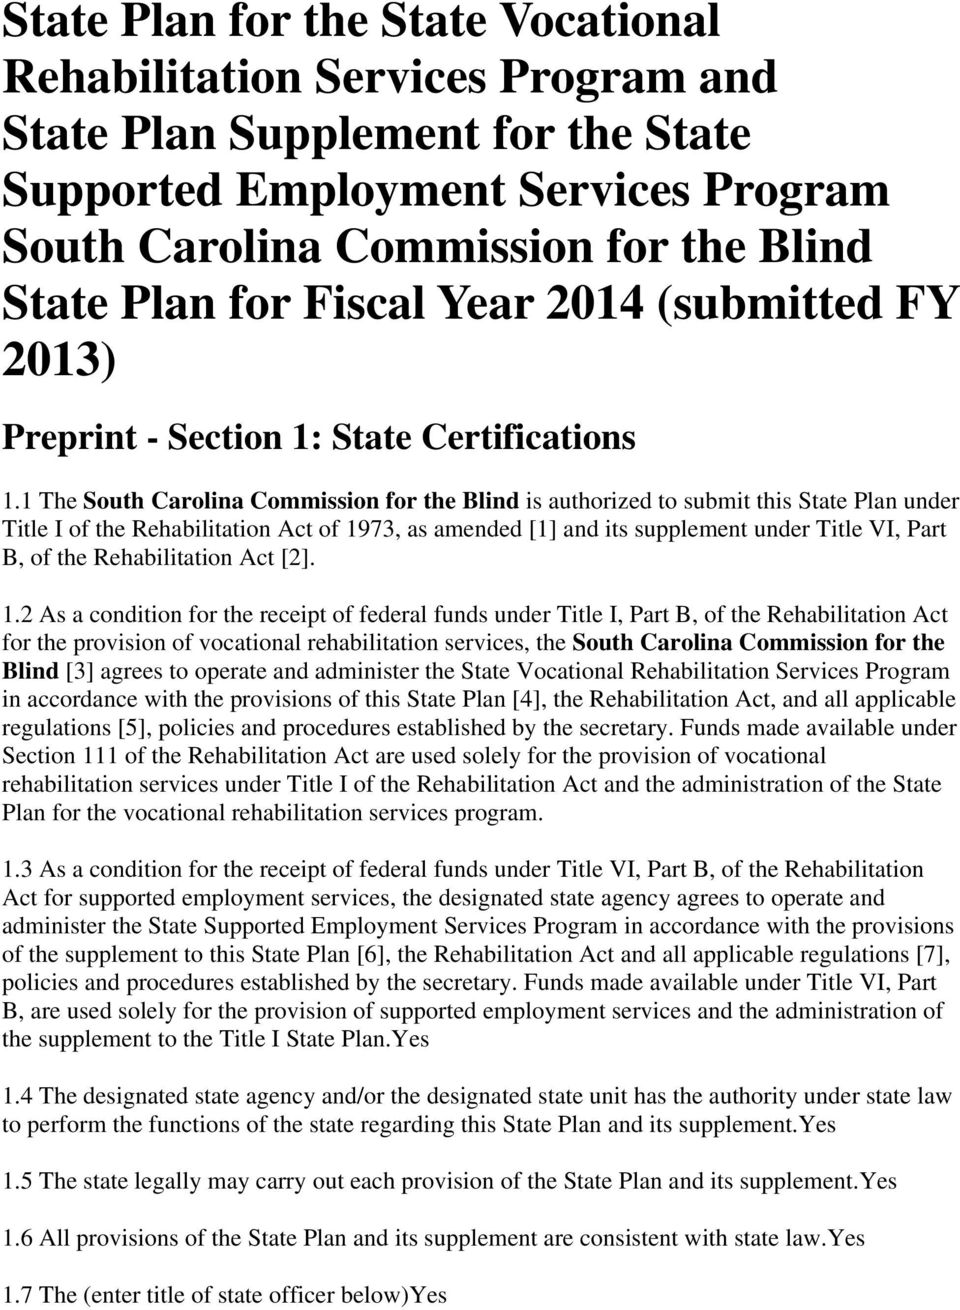 1 The South Carolina Commission for the Blind is authorized to submit this State Plan under Title I of the Rehabilitation Act of 1973, as amended [1] and its supplement under Title VI, Part B, of the